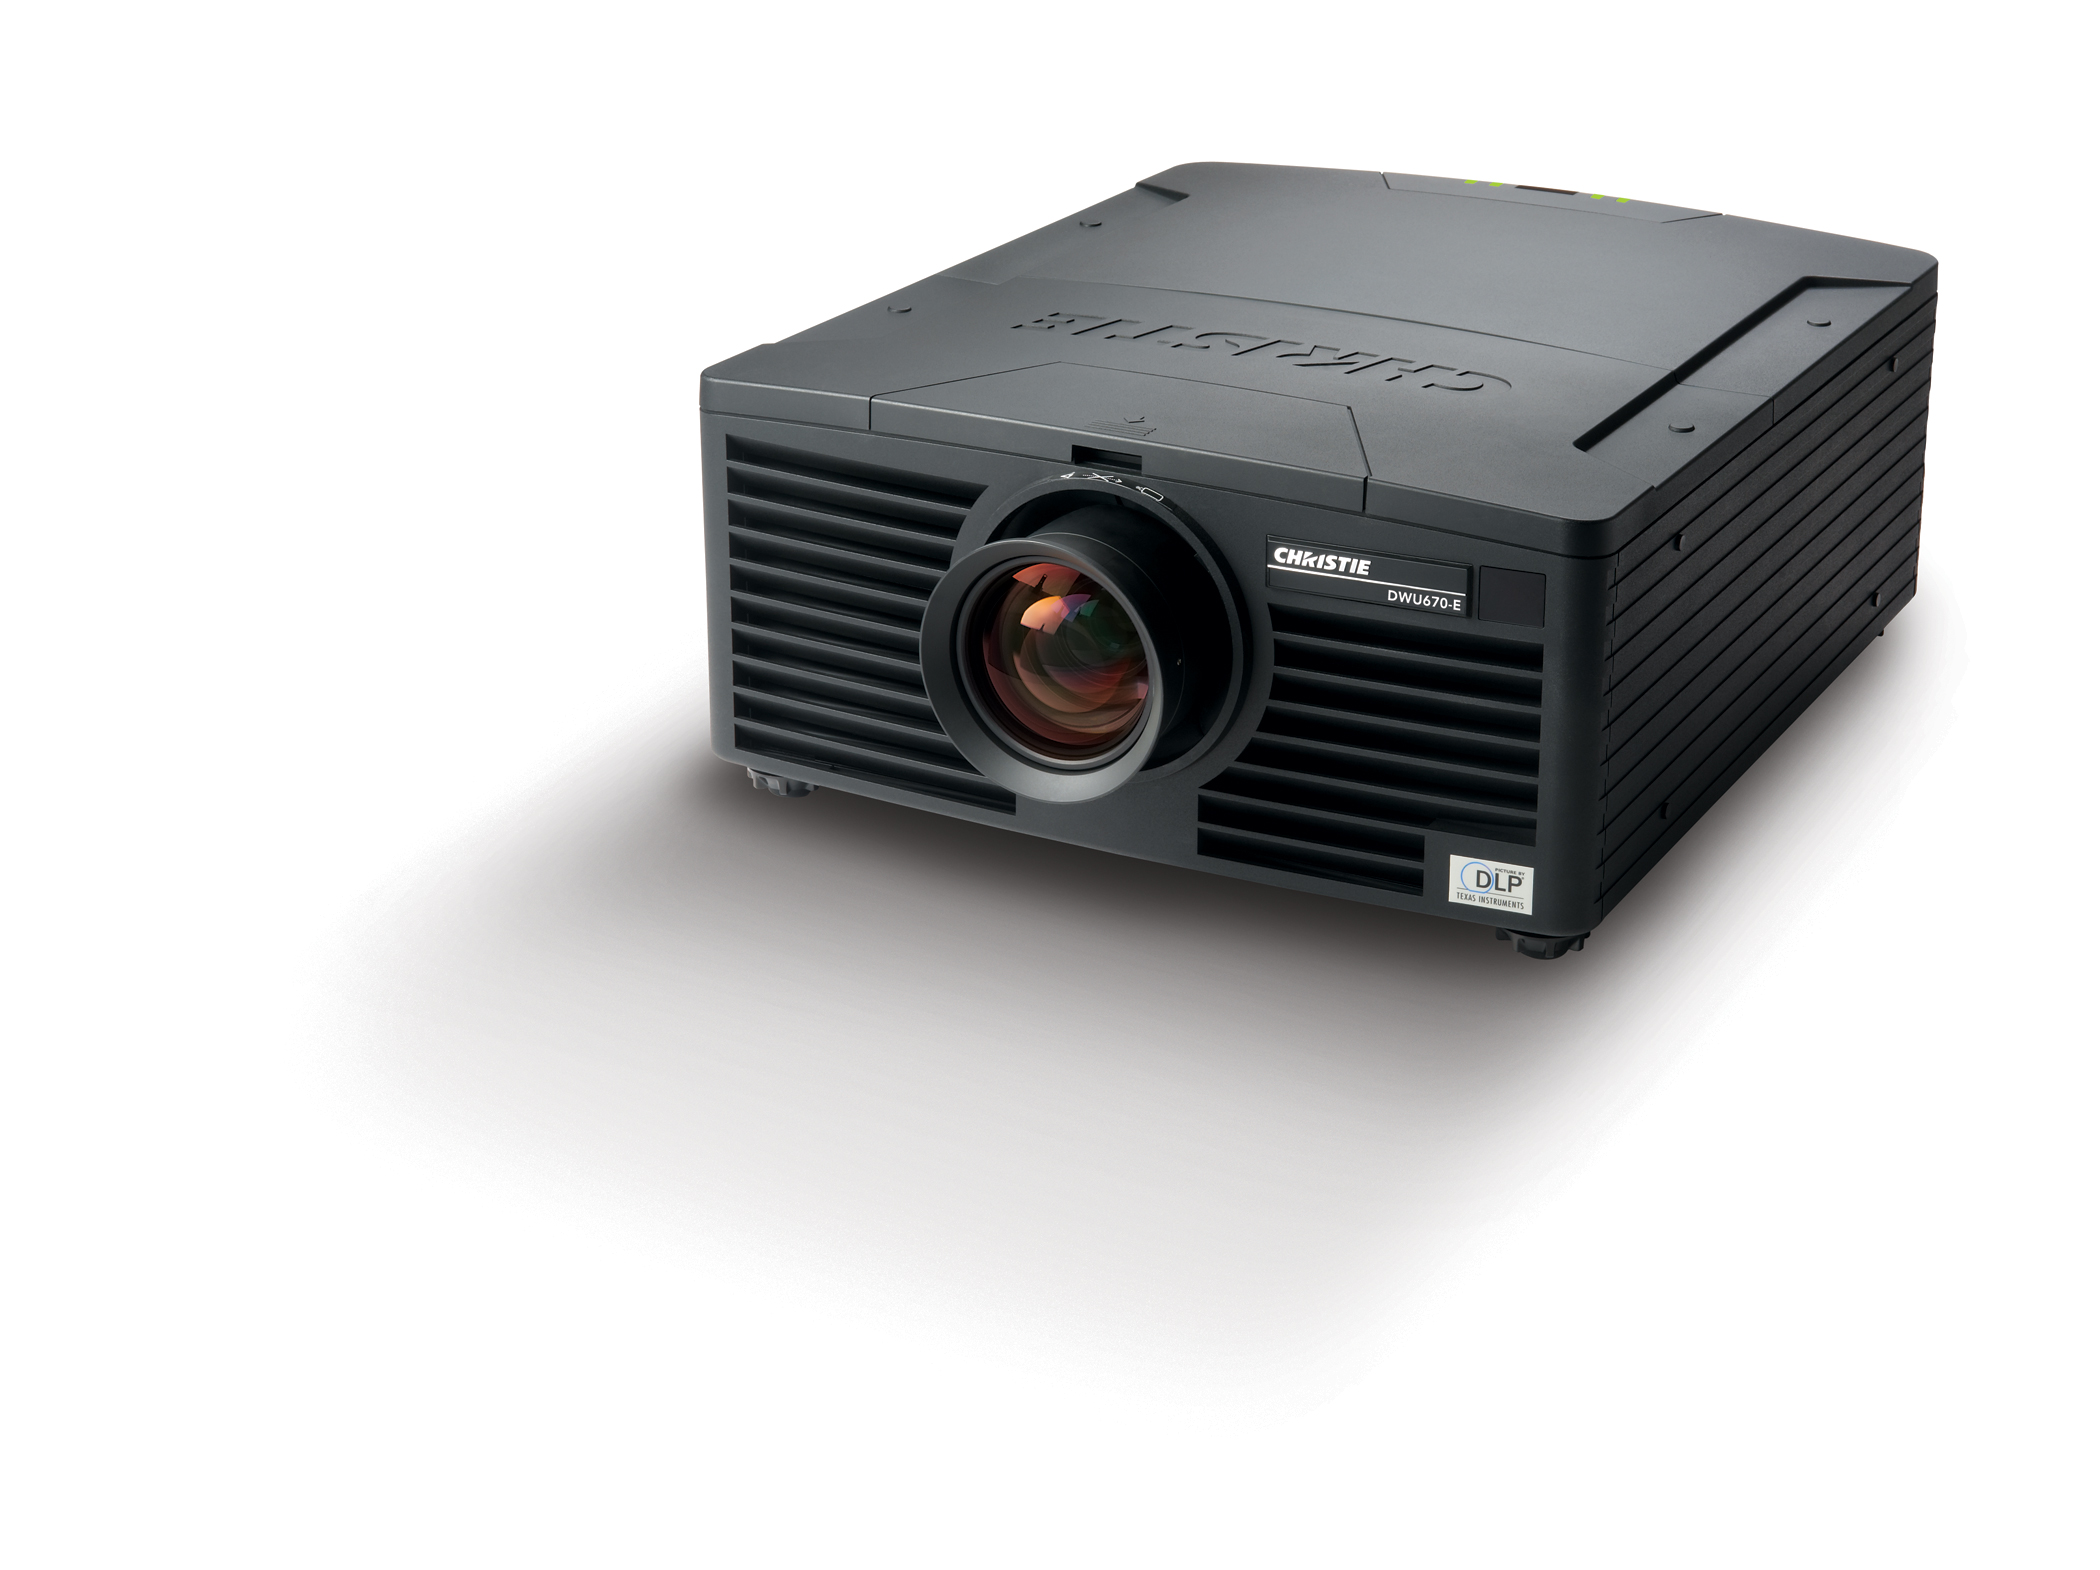 /globalassets/.catalog/products/images/christie-dwu670-e/gallery/christie-dwu670-e-dlp-digital-projector-top-left-pr.jpg